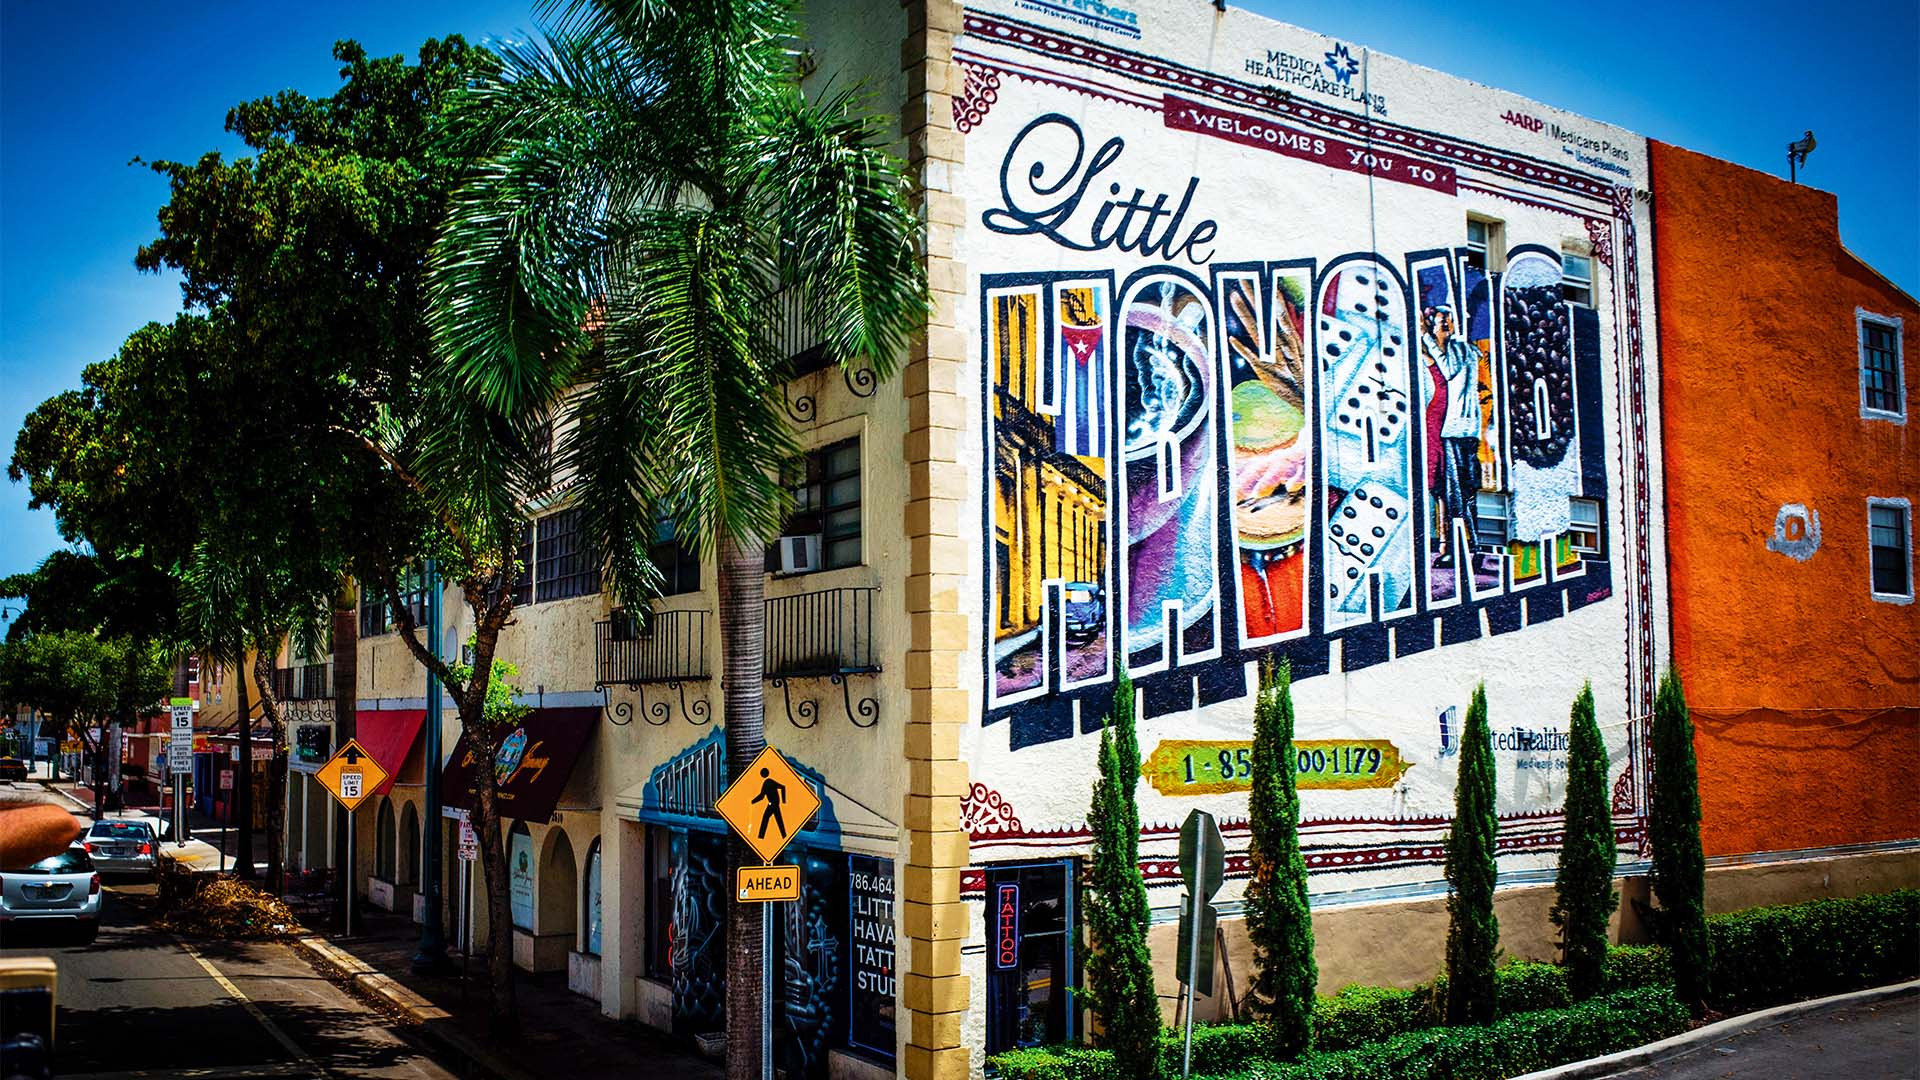 Mural in Little Havana, Miami, Florida